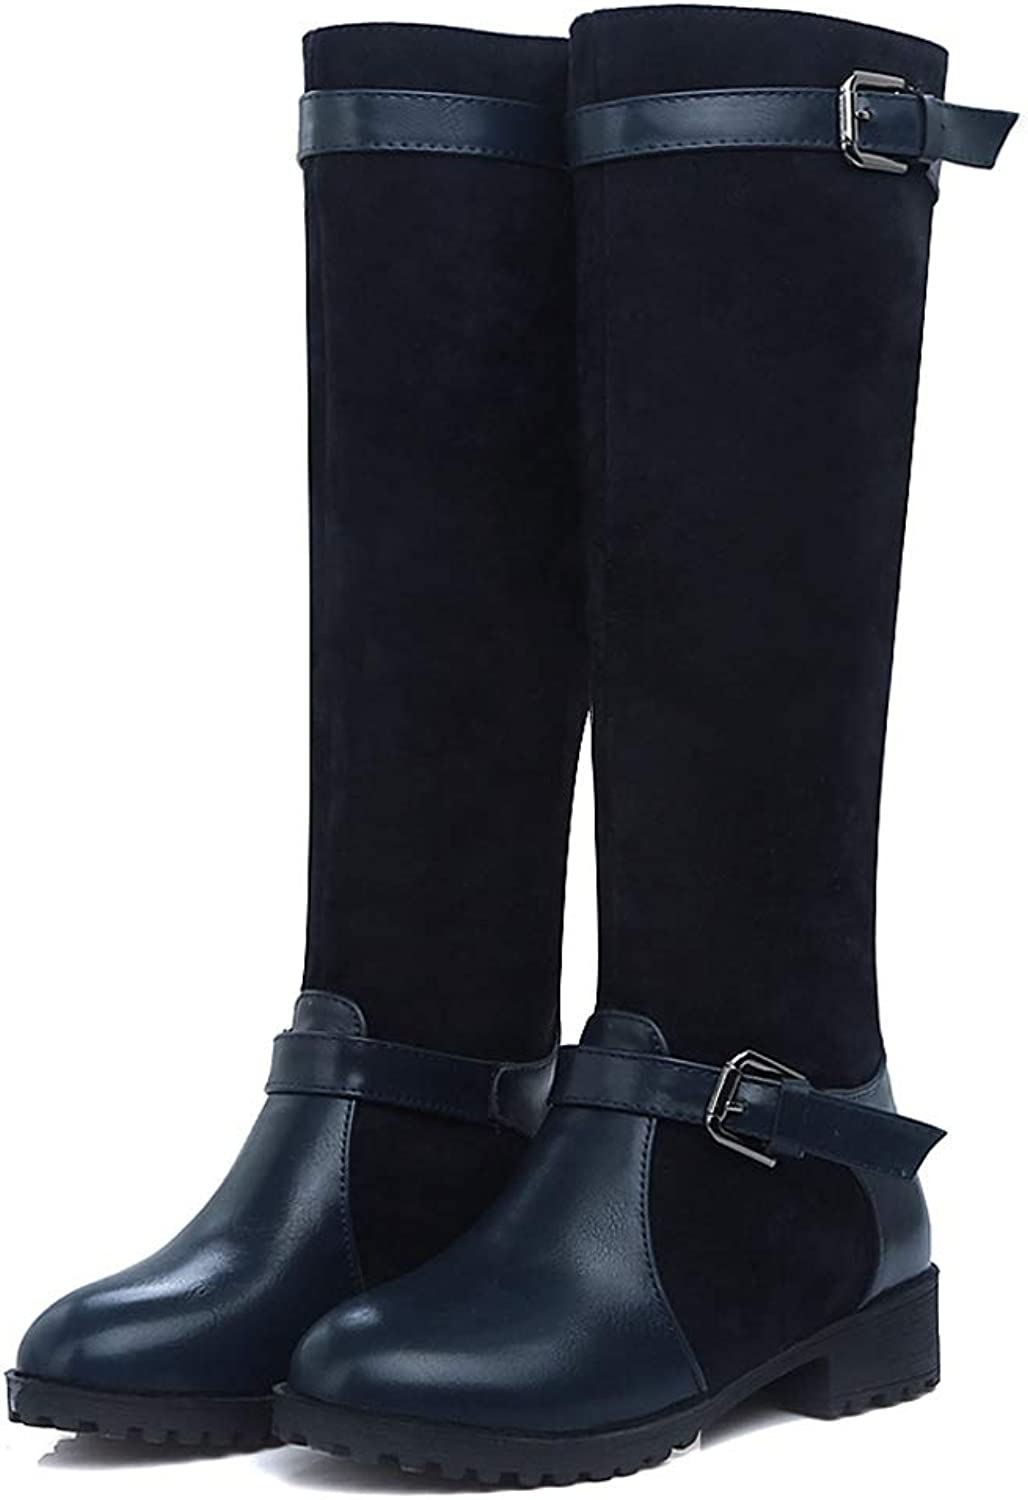 Women's shoes Buckle Winter Riding Boots Fashion Cool Round Toe Knee High Boots